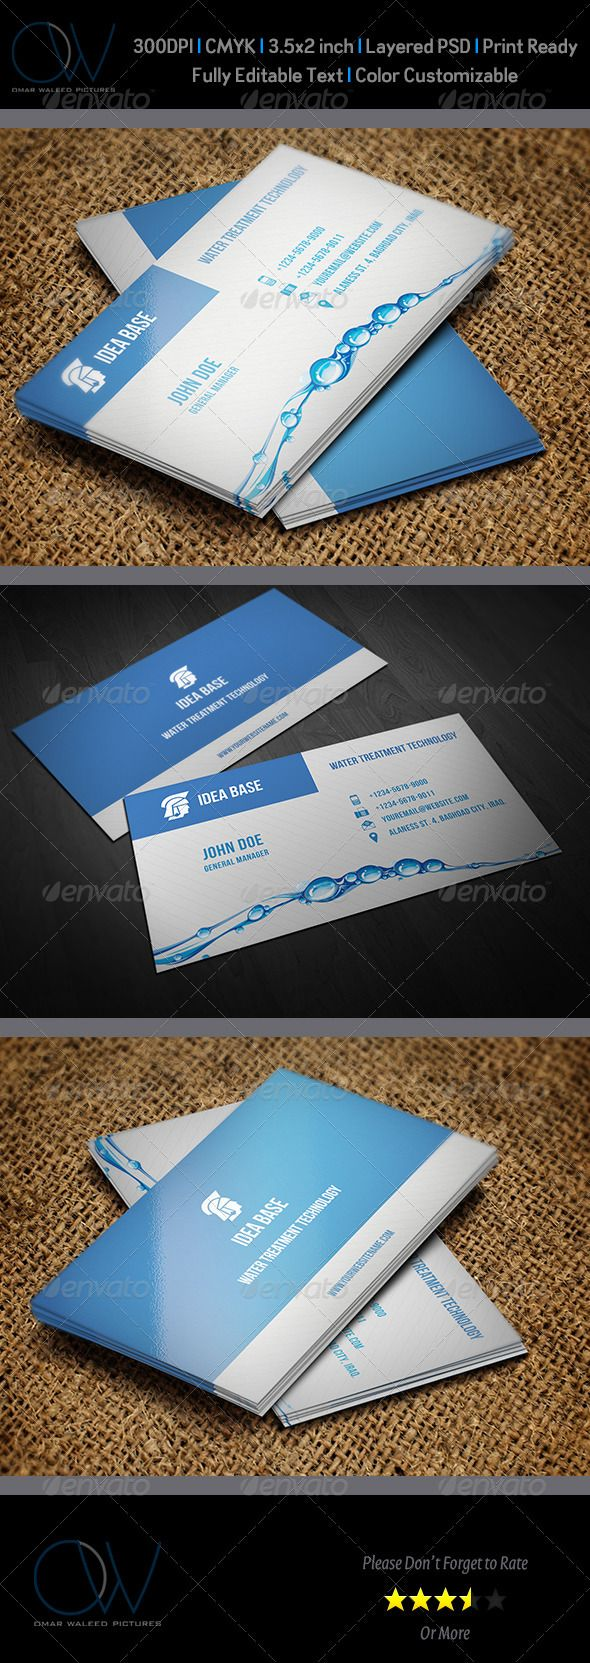 Water Technology Business Card — Photoshop PSD #visiting card #card • Available here → https://graphicriver.net/item/water-technology-business-card/3517608?ref=pxcr